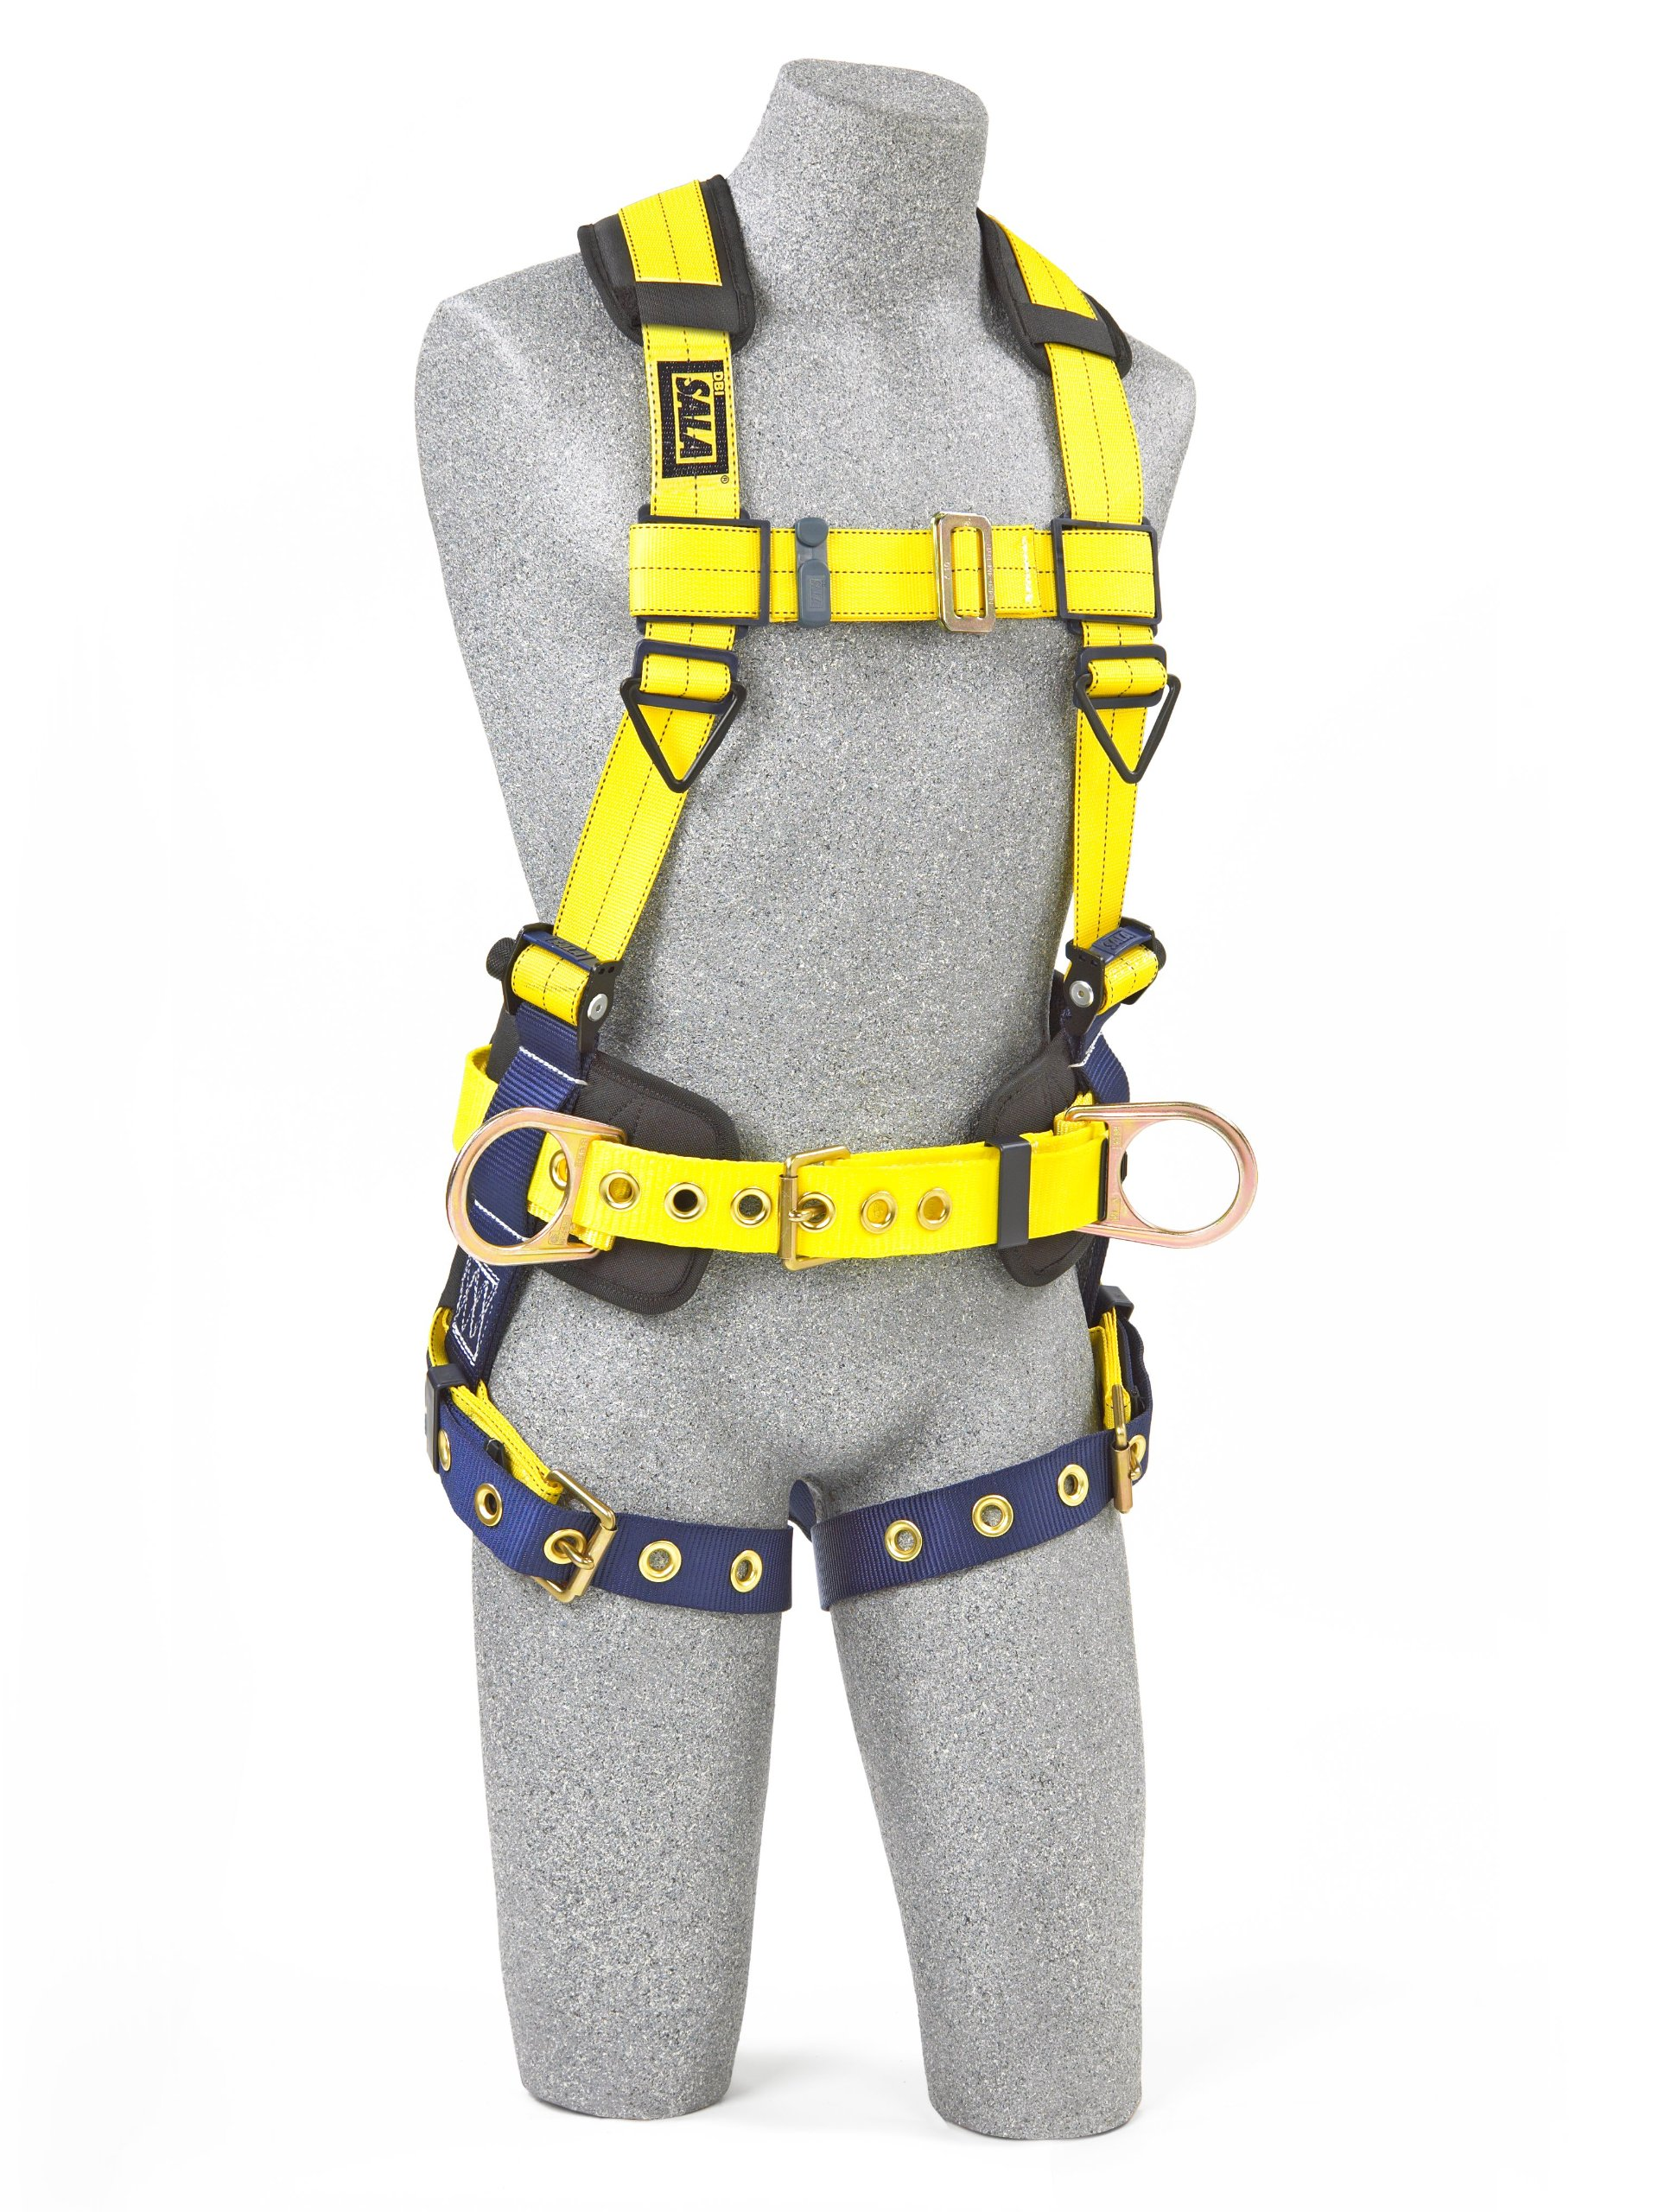 3M DBI-SALA Delta Construction Harness, Belt w/Sewn-In Back & Shoulder Pads, Large, 1101655